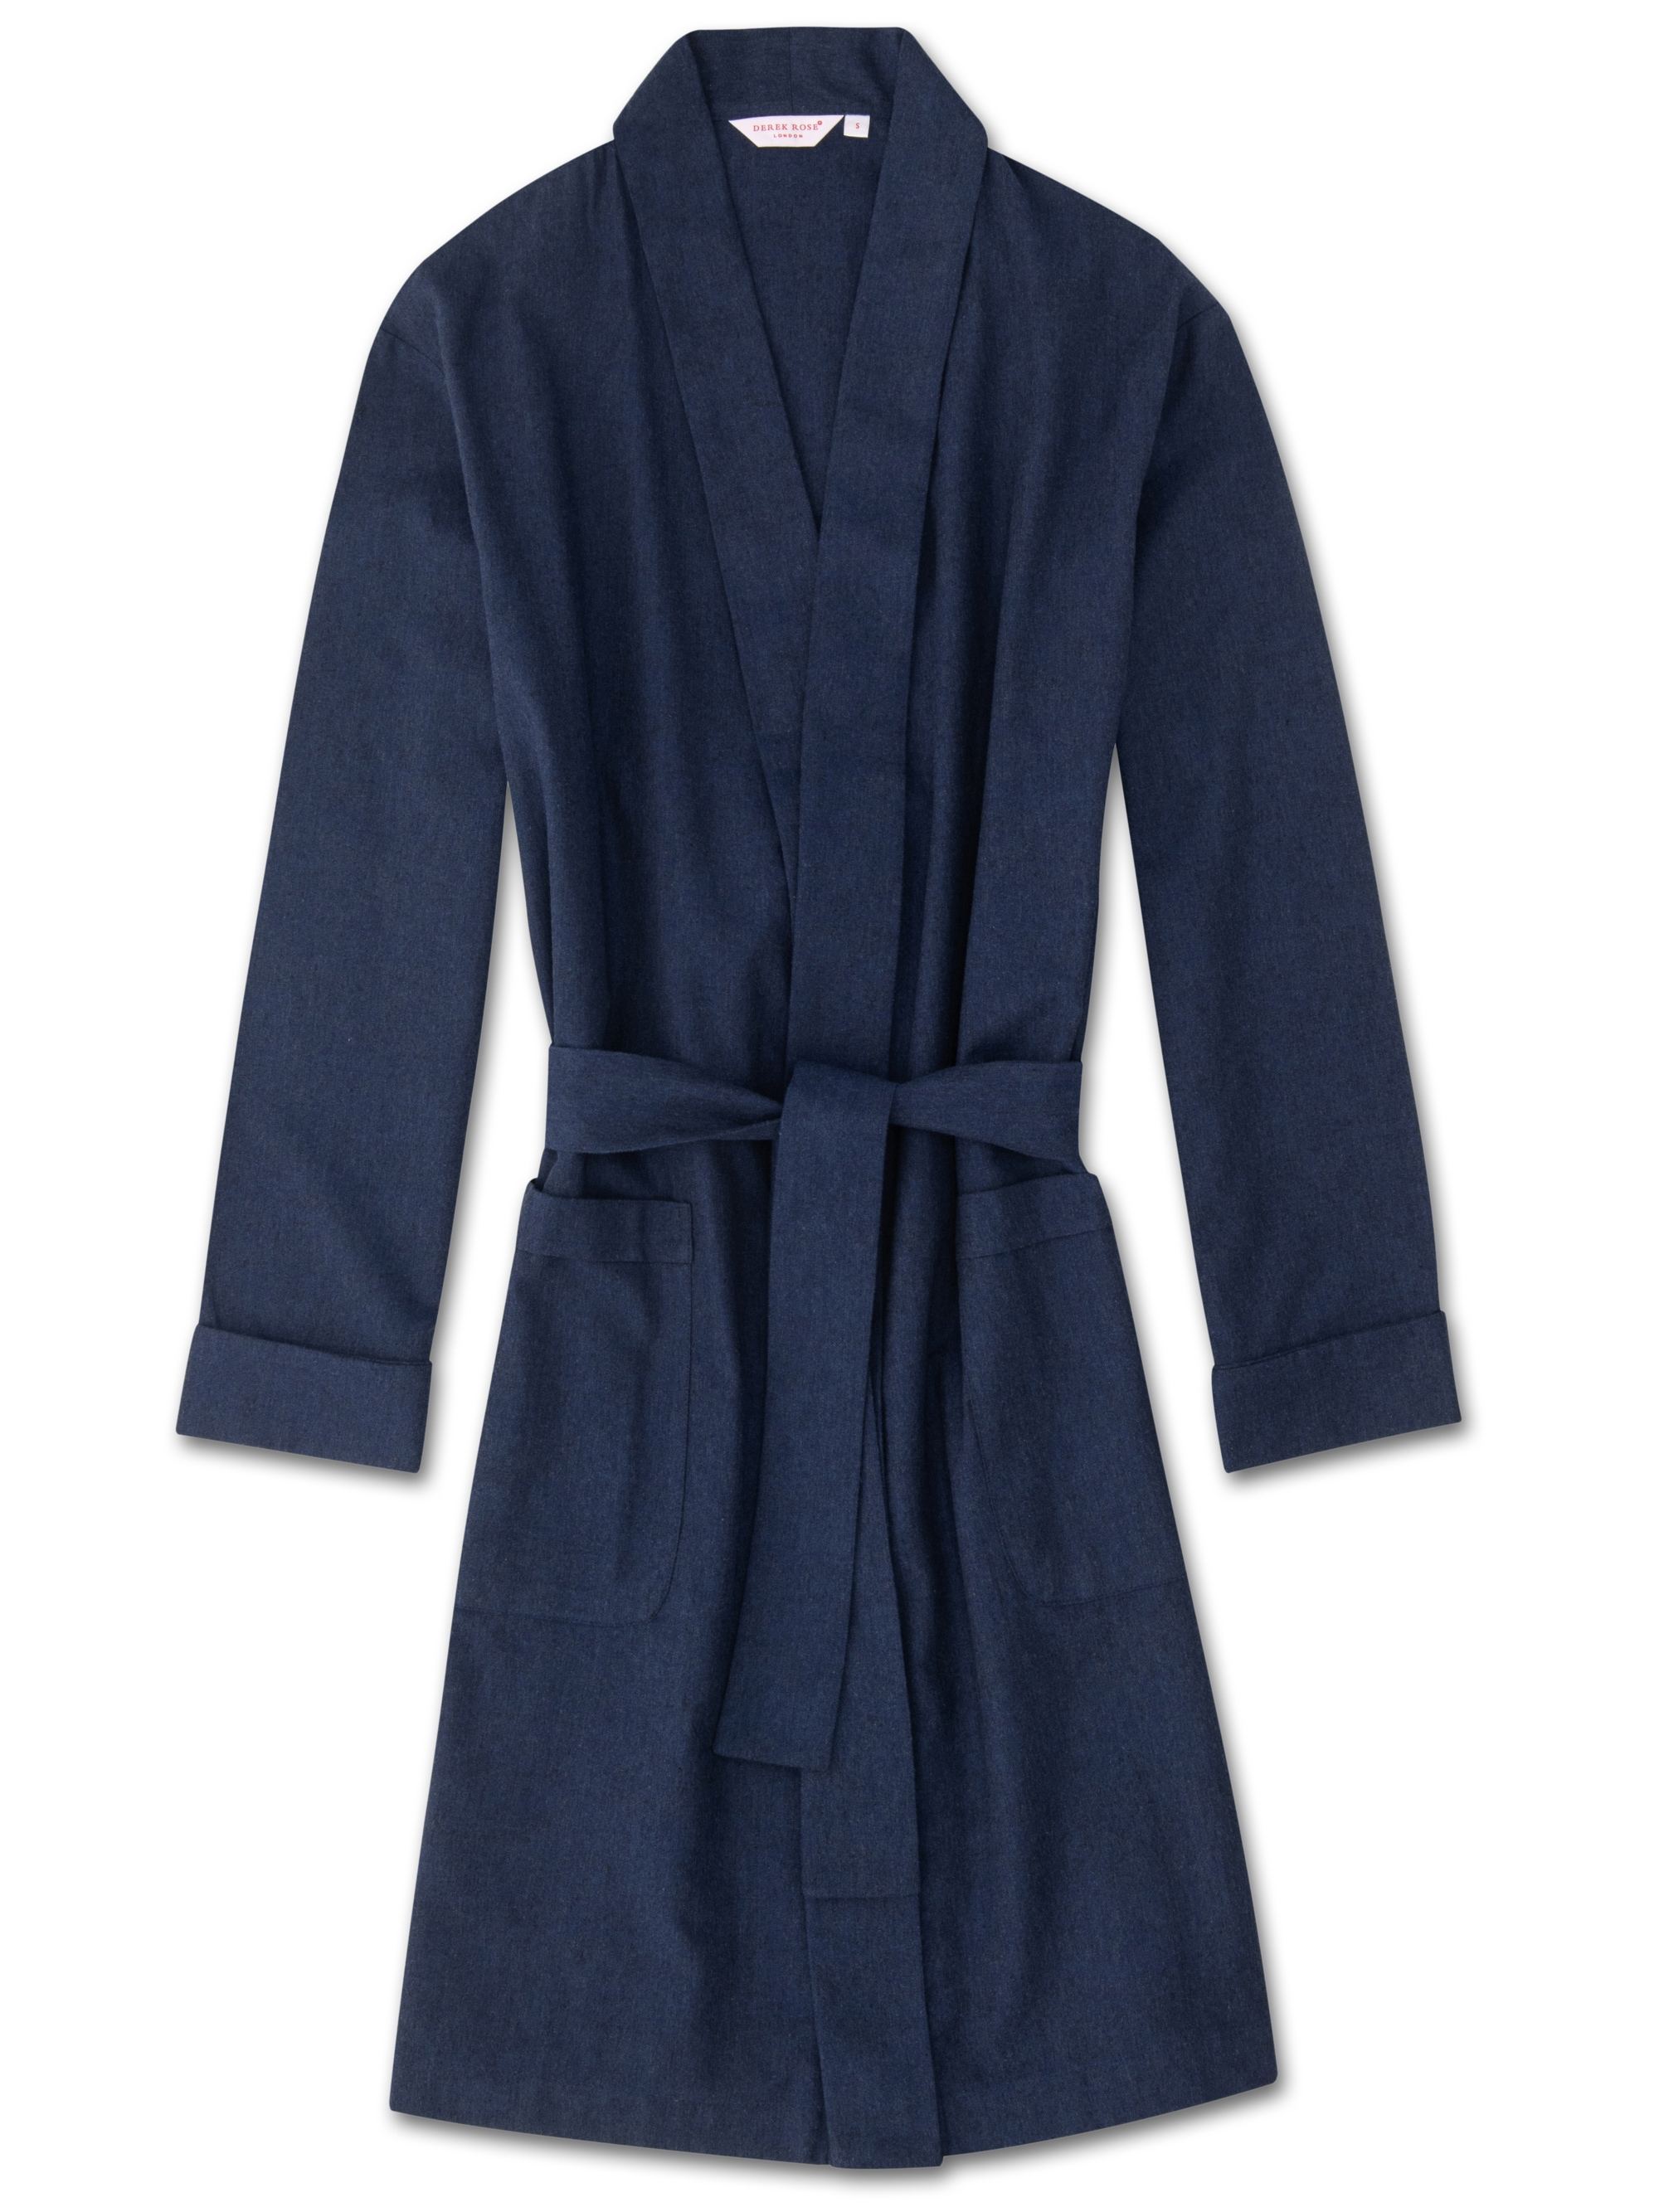 Derek Rose Women's Robe Balmoral 3 Brushed Cotton Navy